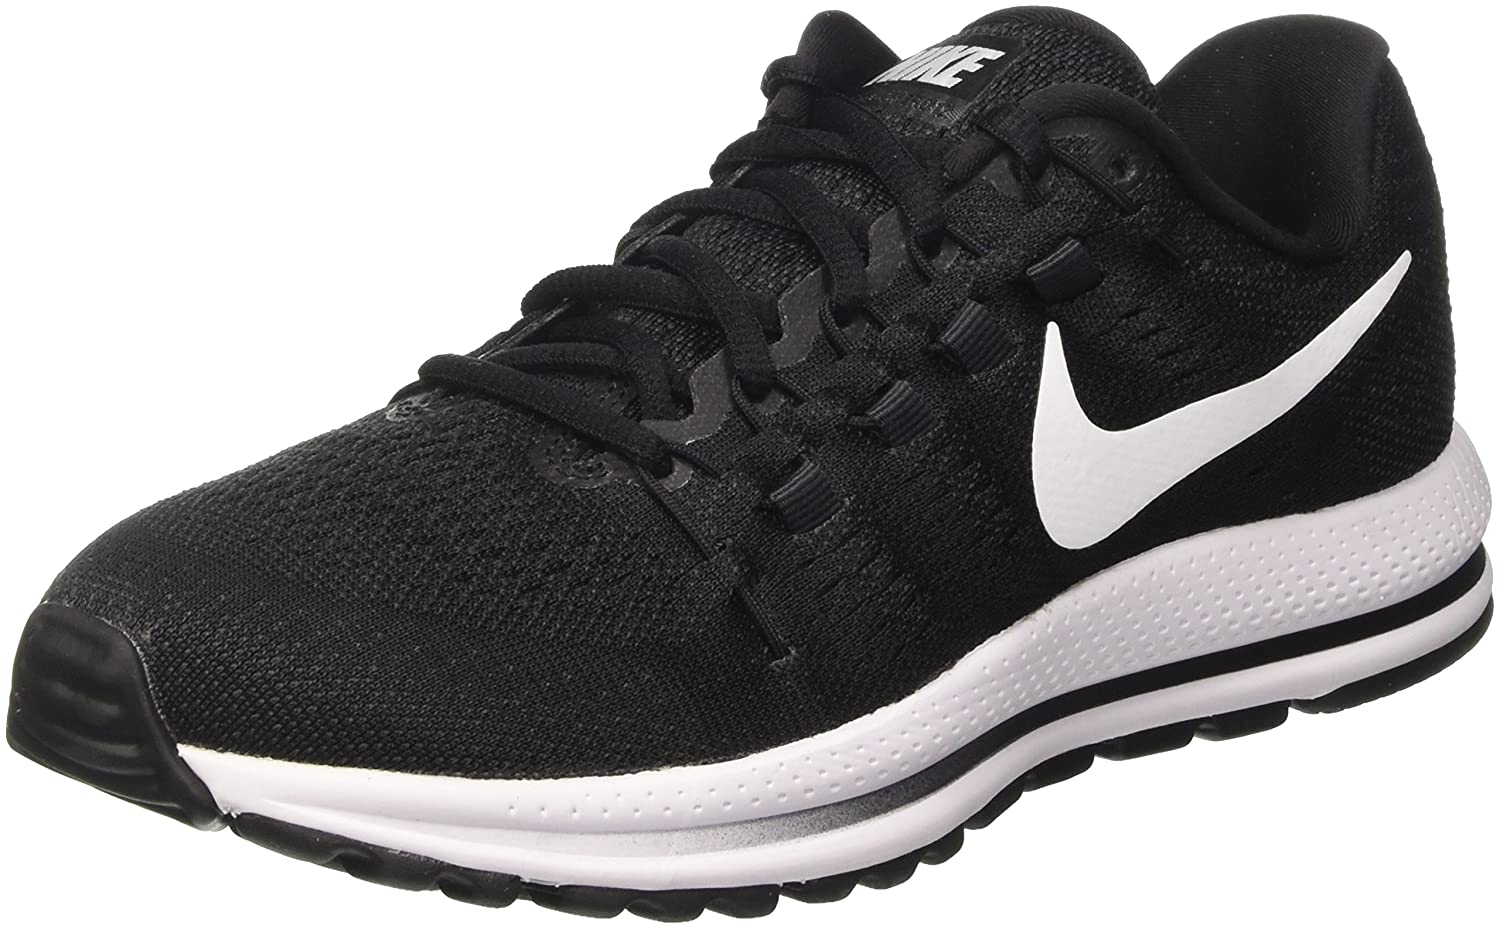 NIKE Men's Air Zoom Vomero 12 Running Shoe B0714FH8N9 7 D(M) US|Black/White/Anthracite